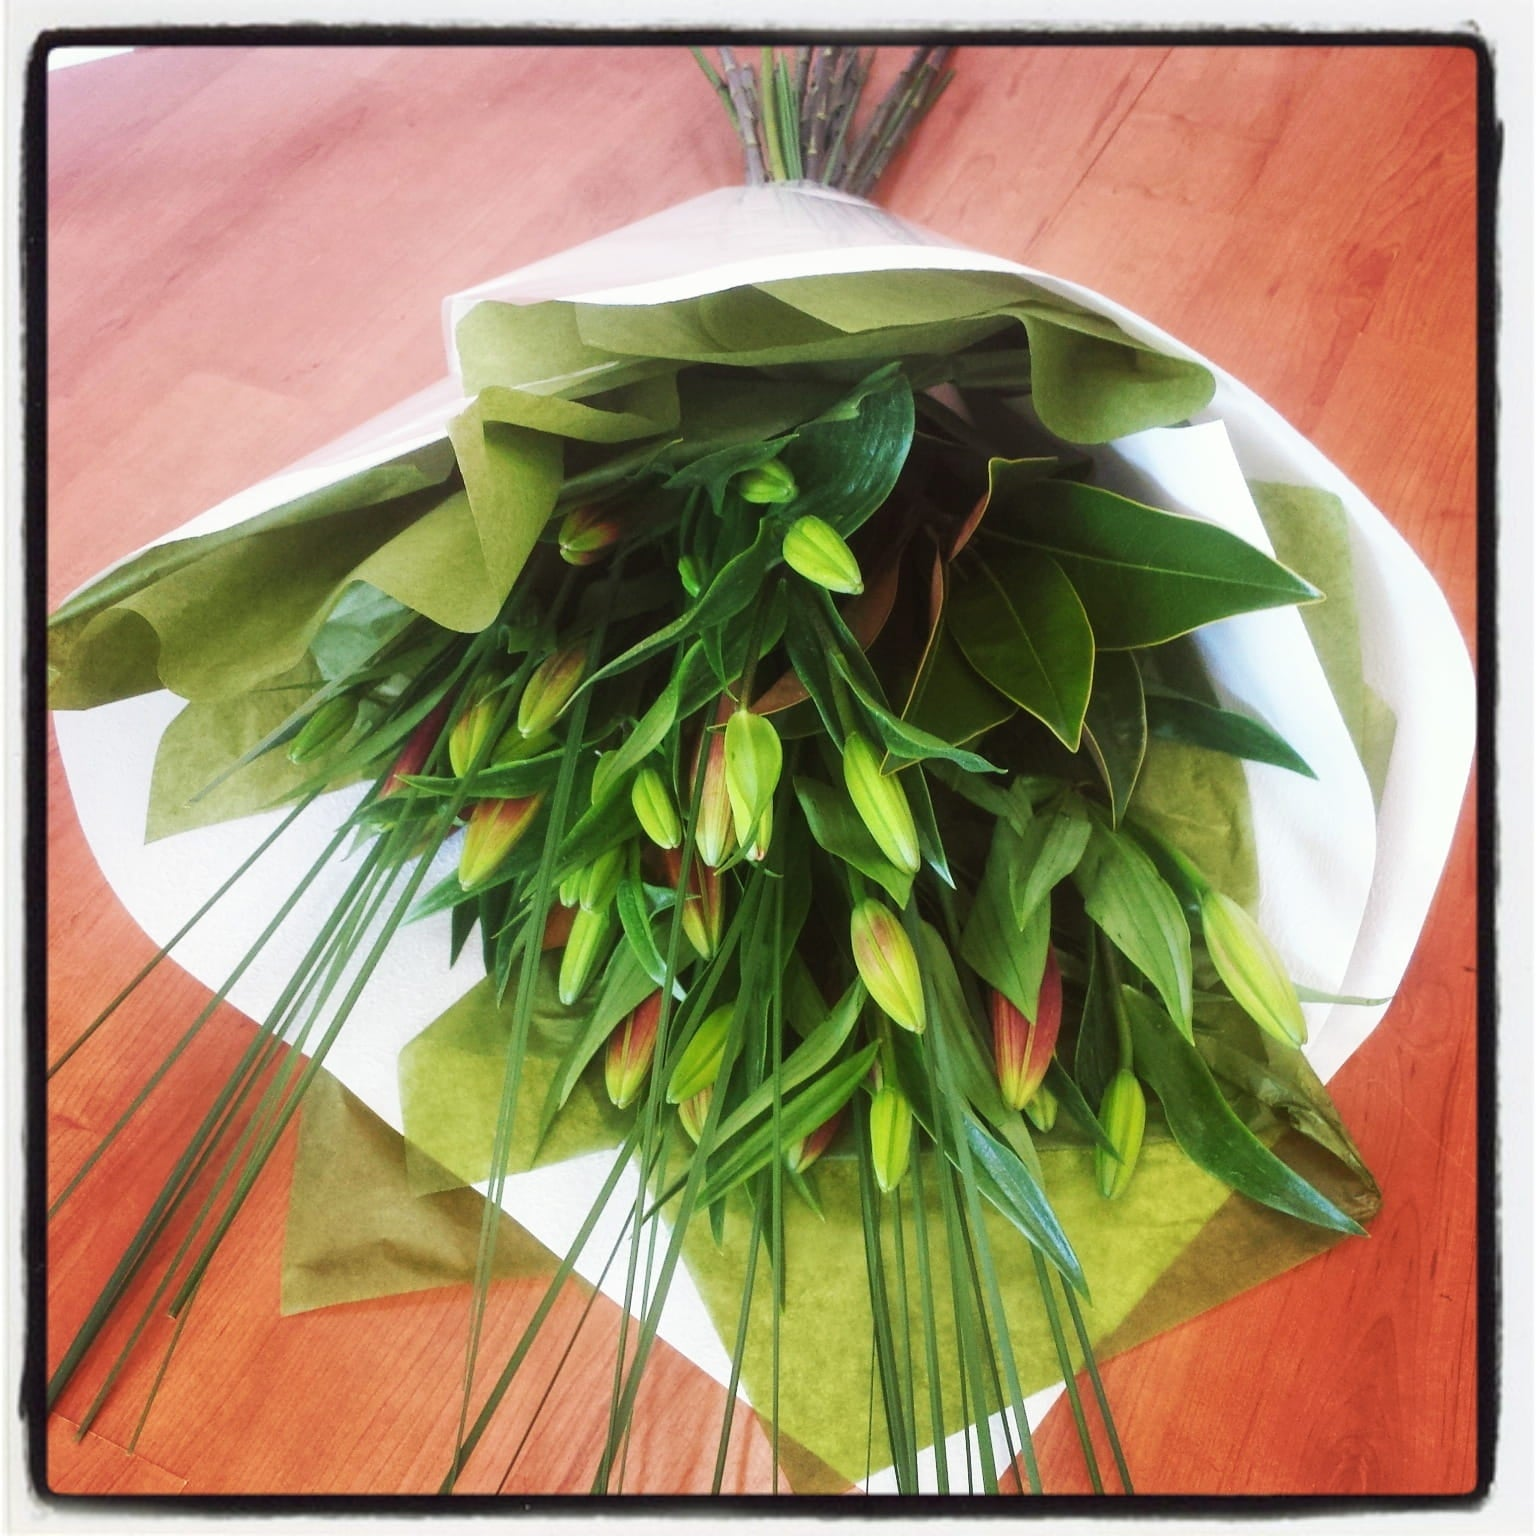 Simplicity bouquet is filled with long lasting lilies & lush foliage.